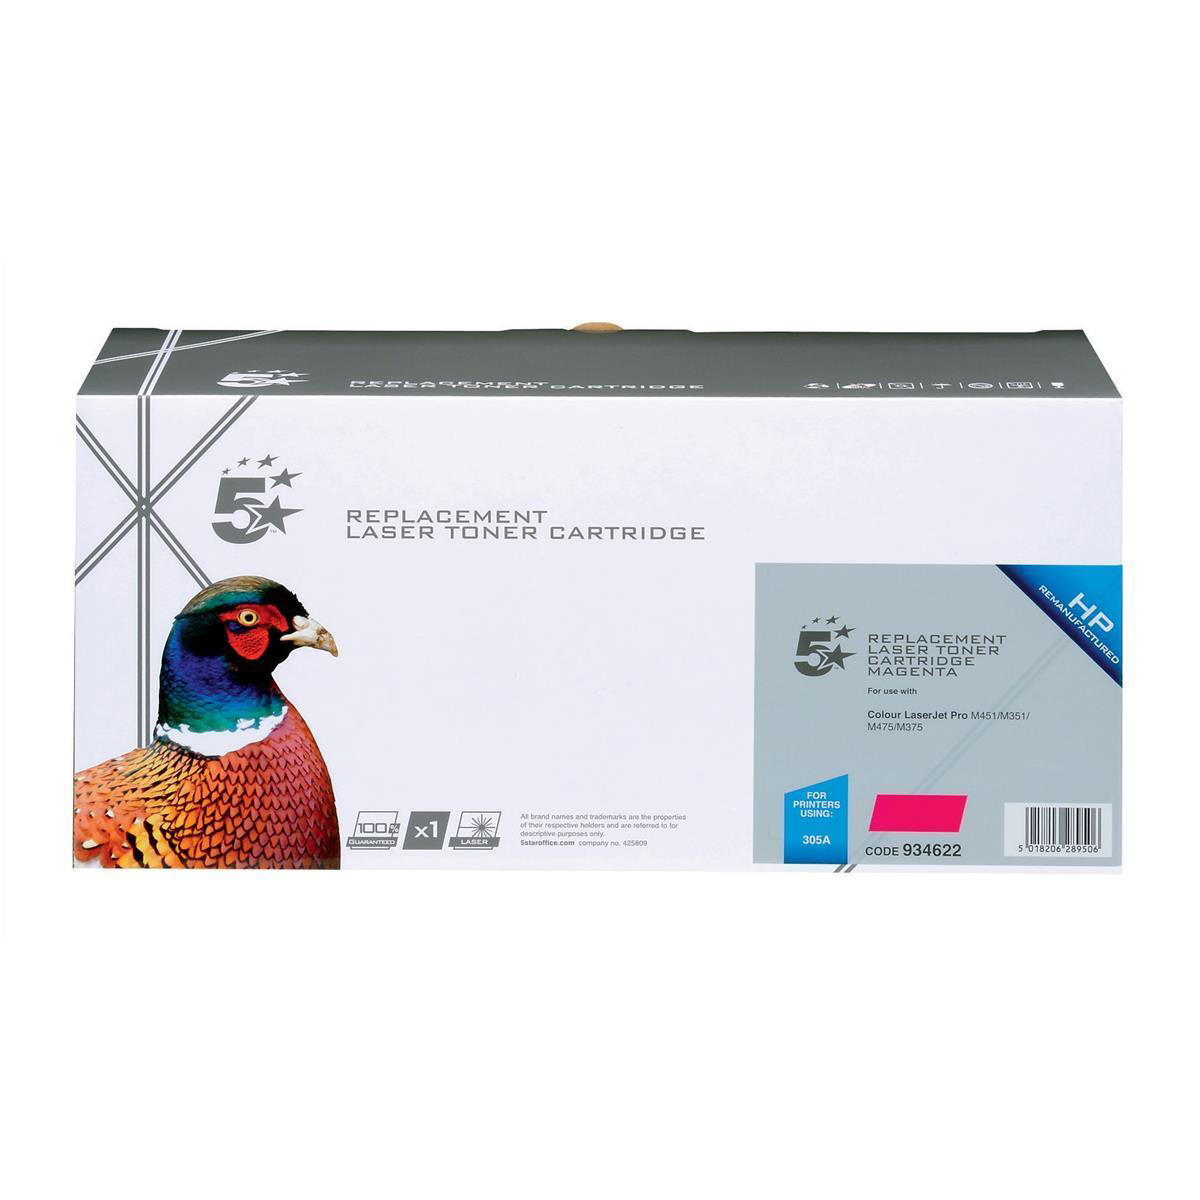 5 Star Office Remanufactured Laser Toner Cartridge 2600pp Magenta [HP 305A CE413A Alternative]